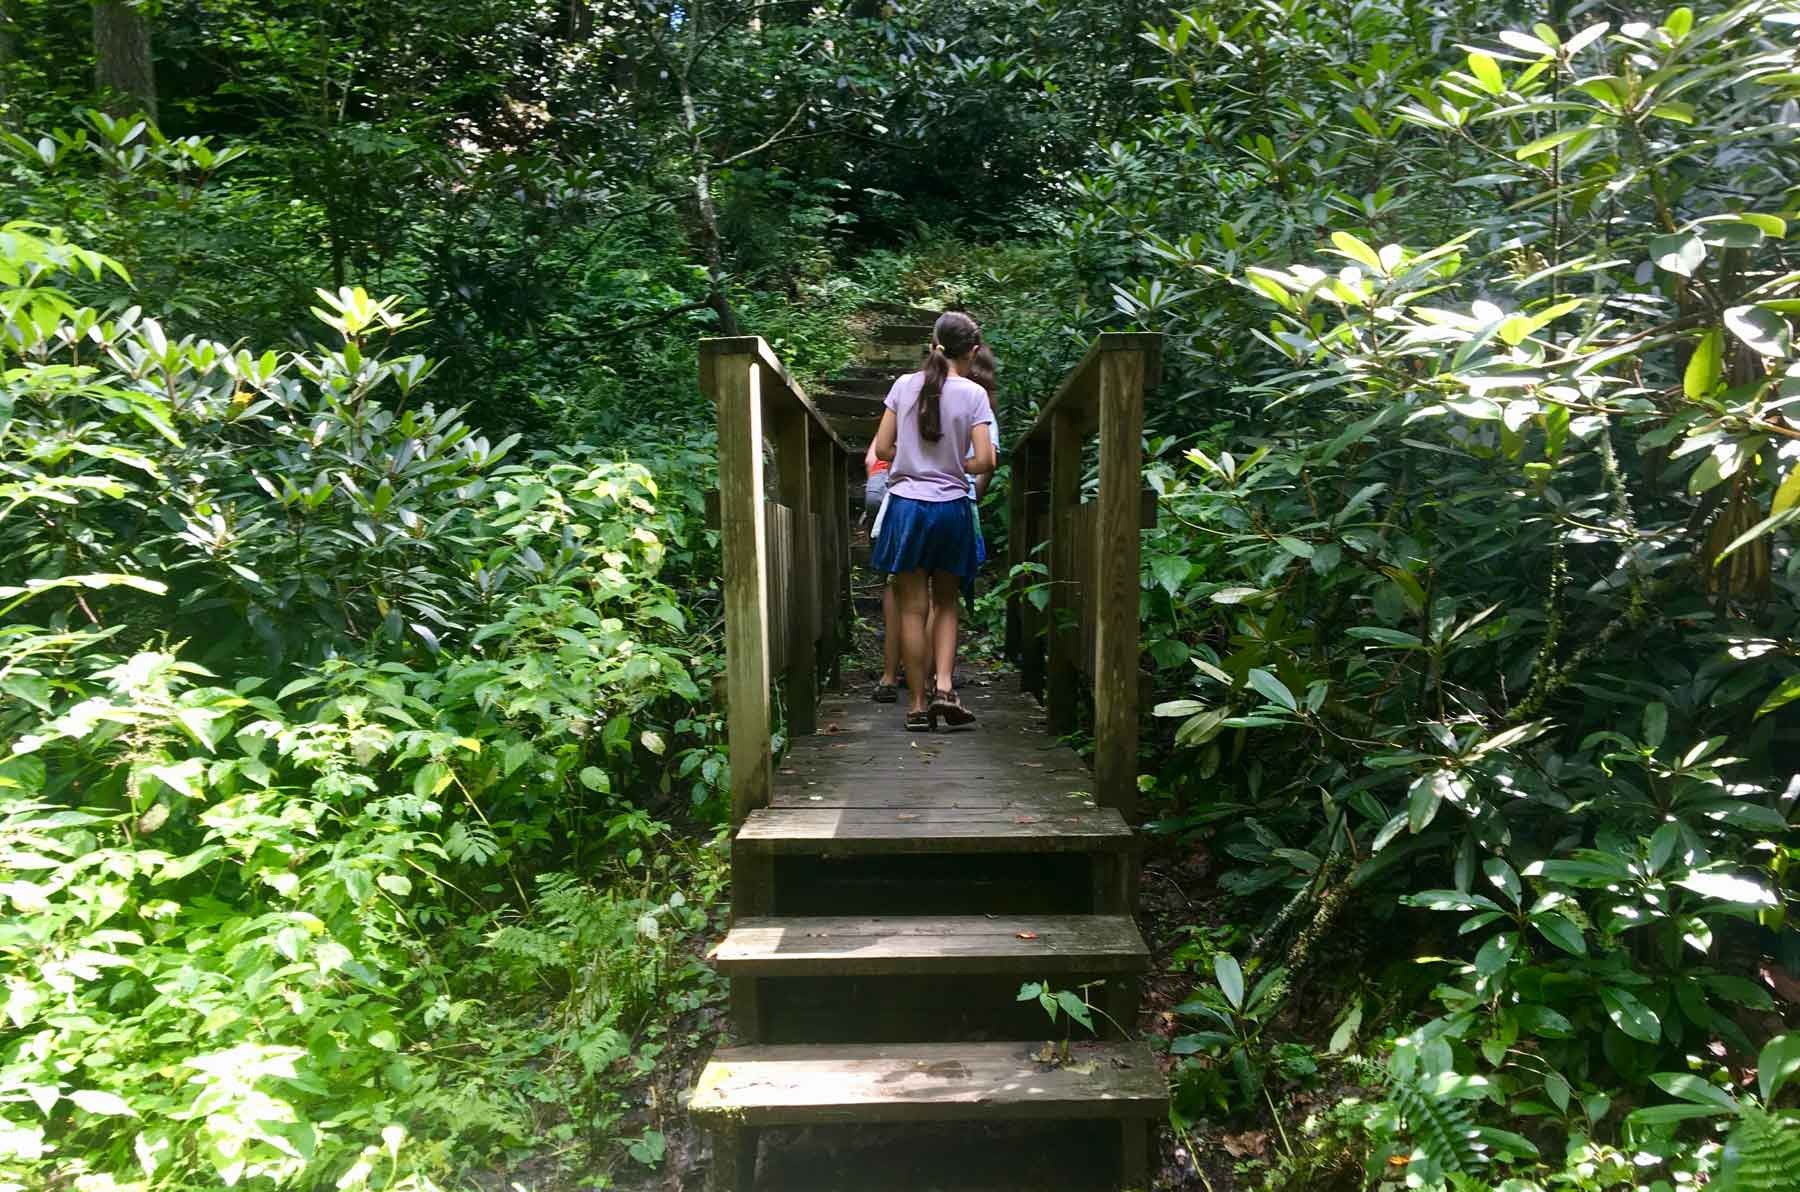 Two teens walking on a bridge on the Cloudland Nature Trail in Roan Mountain State Park, Tennessee